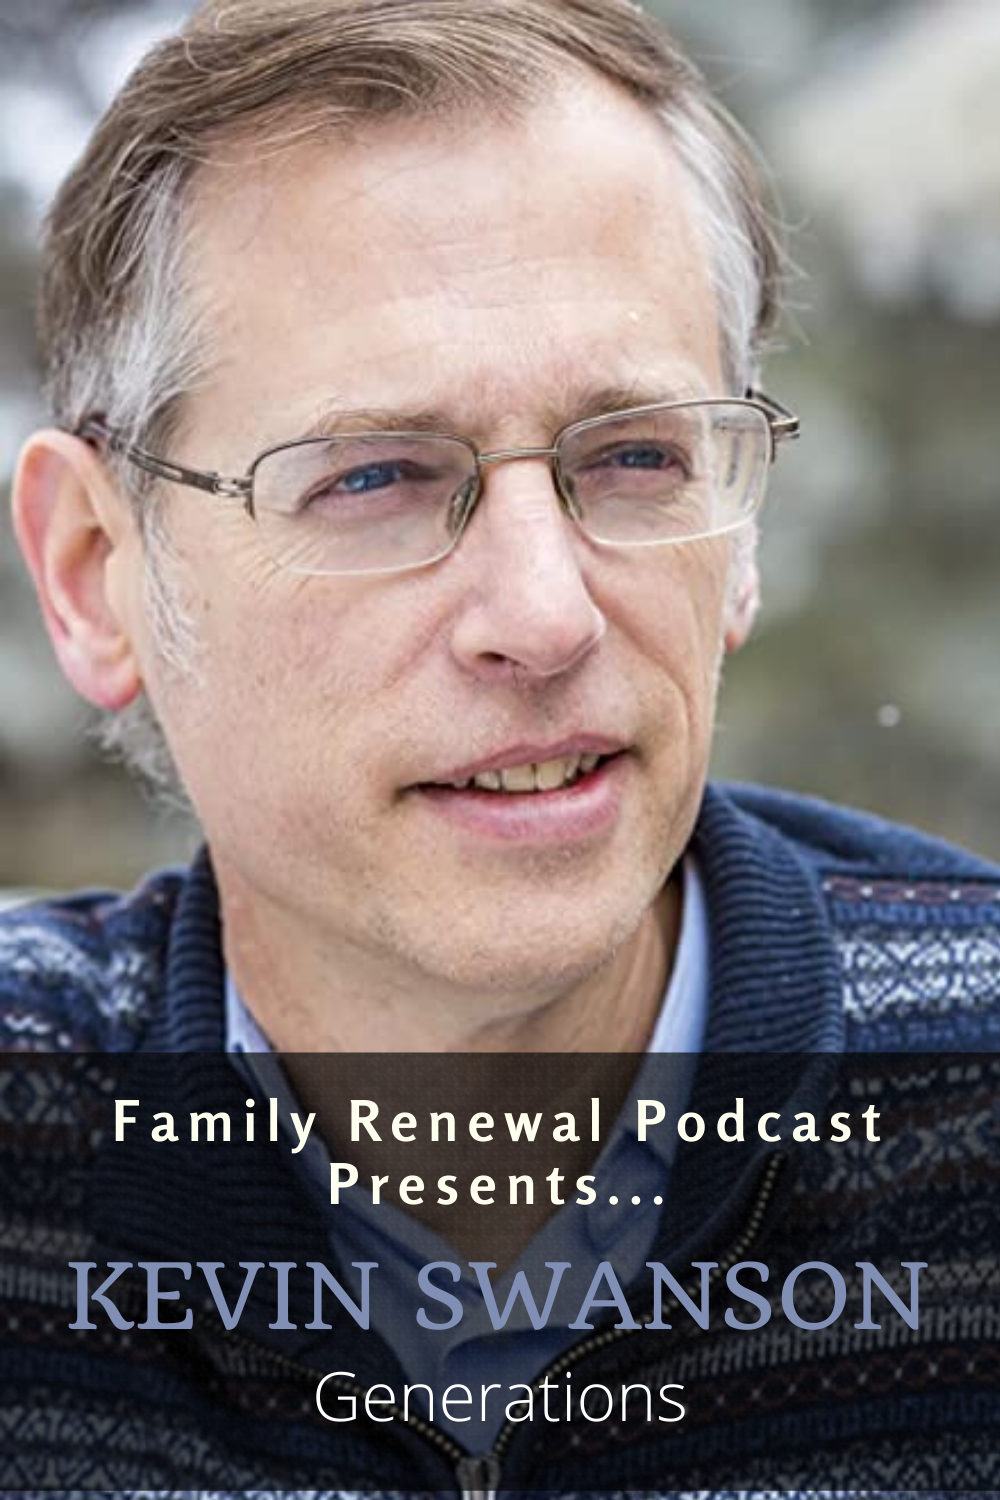 Kevin Swanson of Generations discusses education from a Biblical worldview. What is a Biblical philosophy of education and what does that look like in the various academic disciplines?